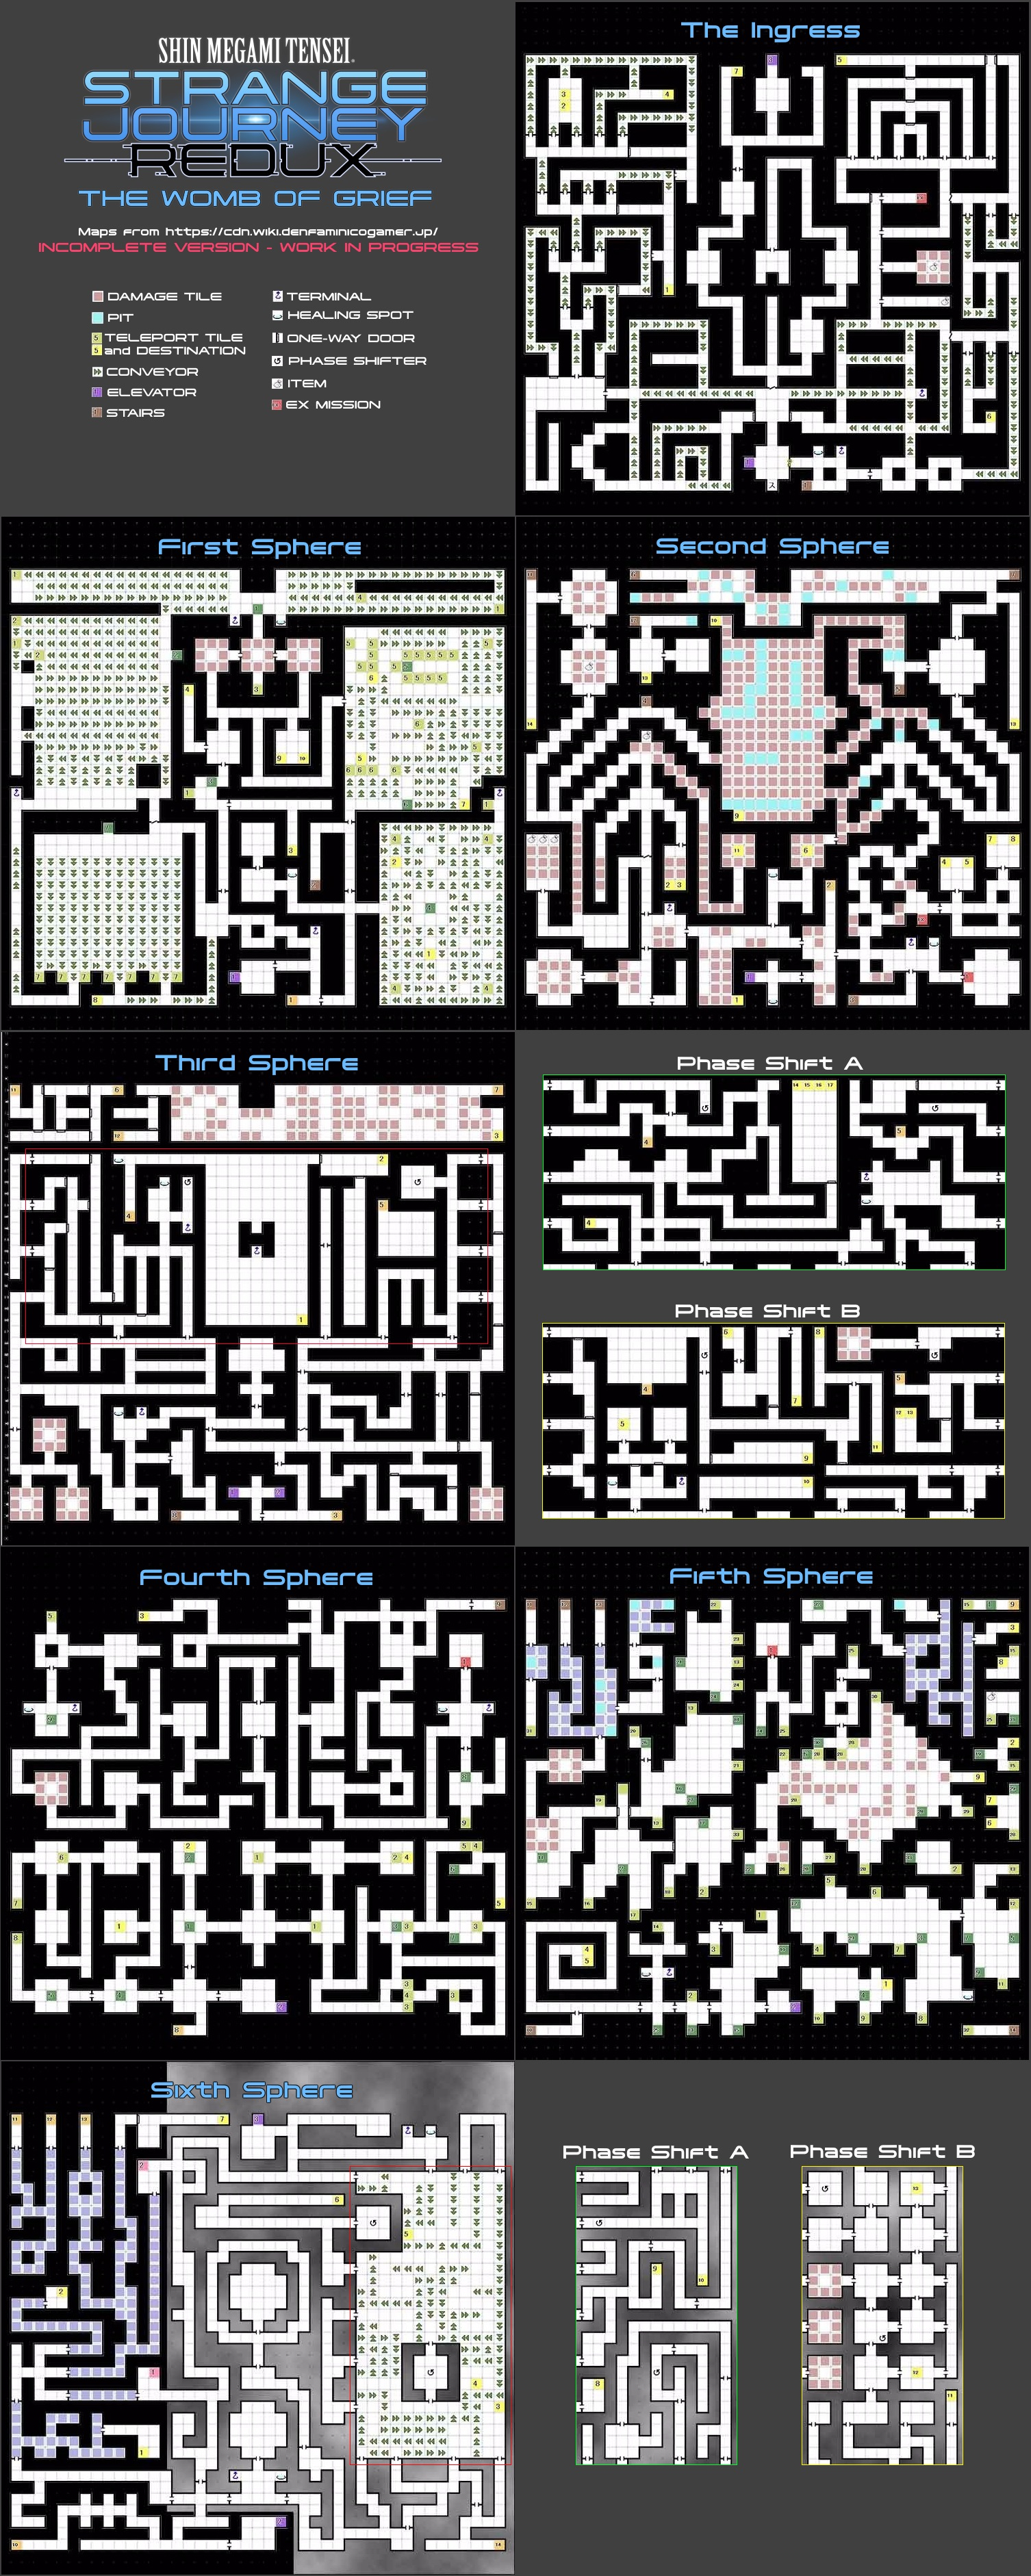 Found some better quality Womb of Grief maps - Shin Megami